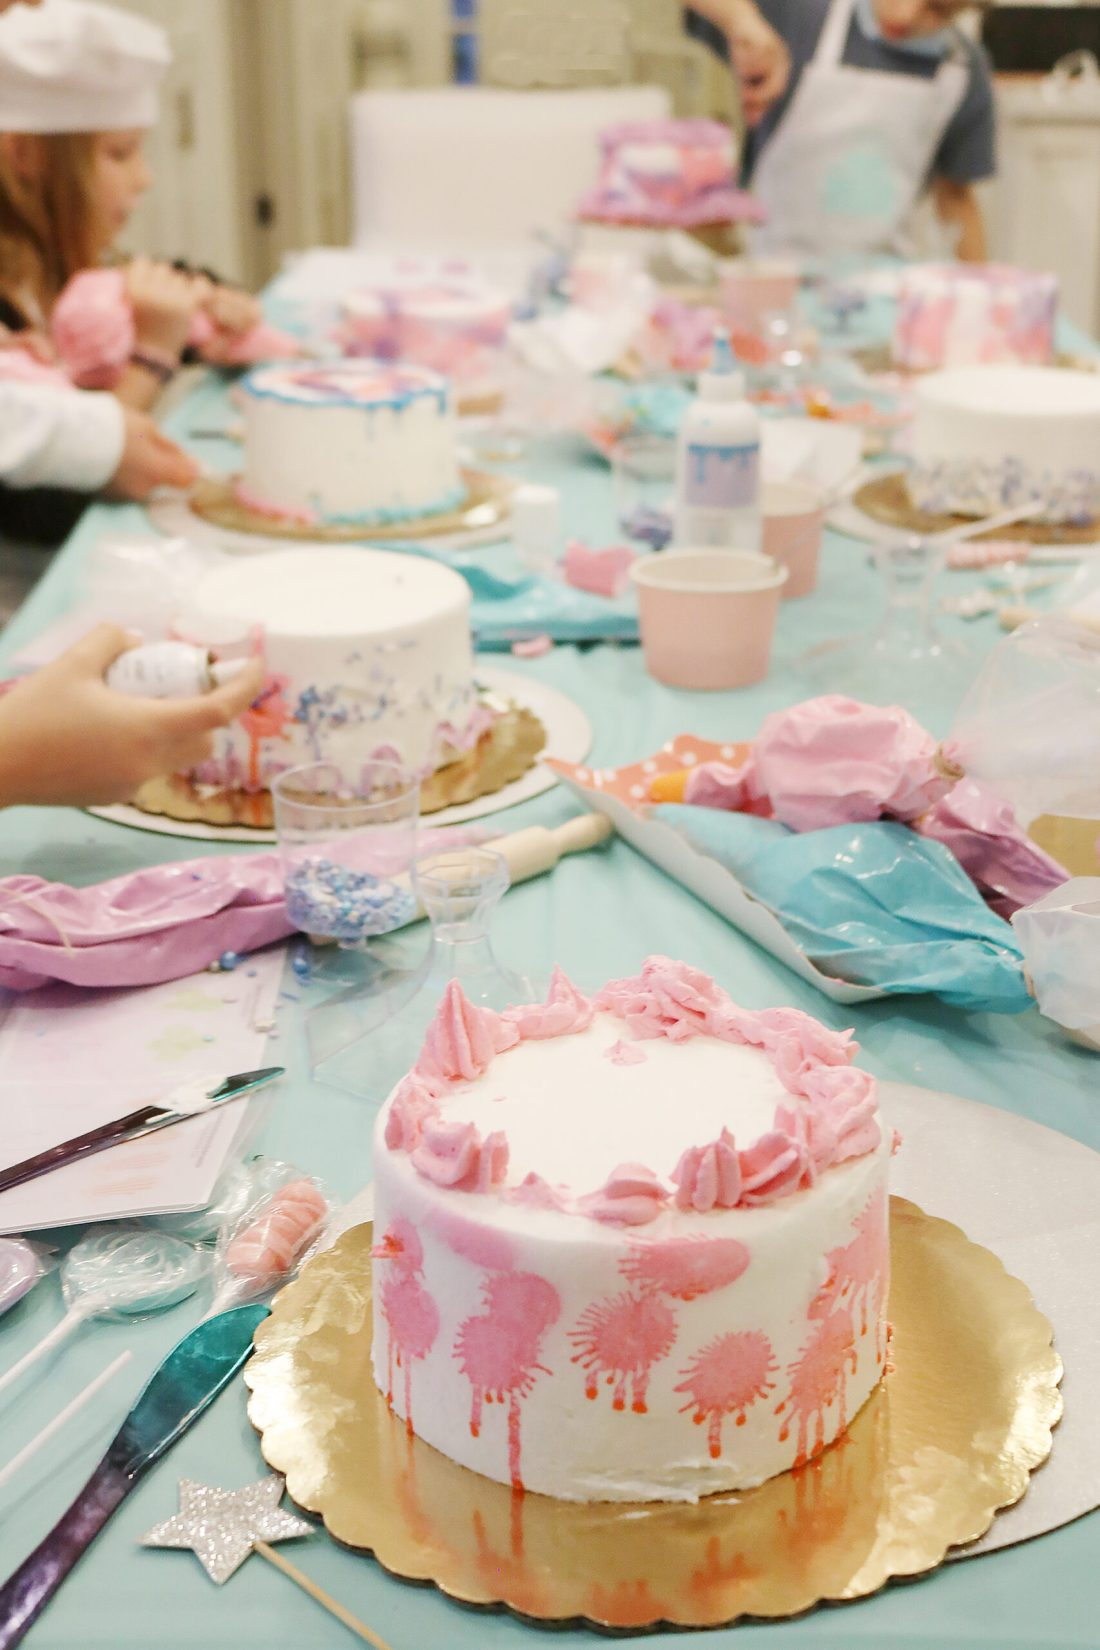 At-Home Cake Decorating Party--easy tips, techniques, supplies and lots of sweets!  You don't have to be a cake decorator to make a pretty cake!  || Darling Darleen Top Lifestyle Blogger #darlingdparties #darlingdarleen #cakedecorating